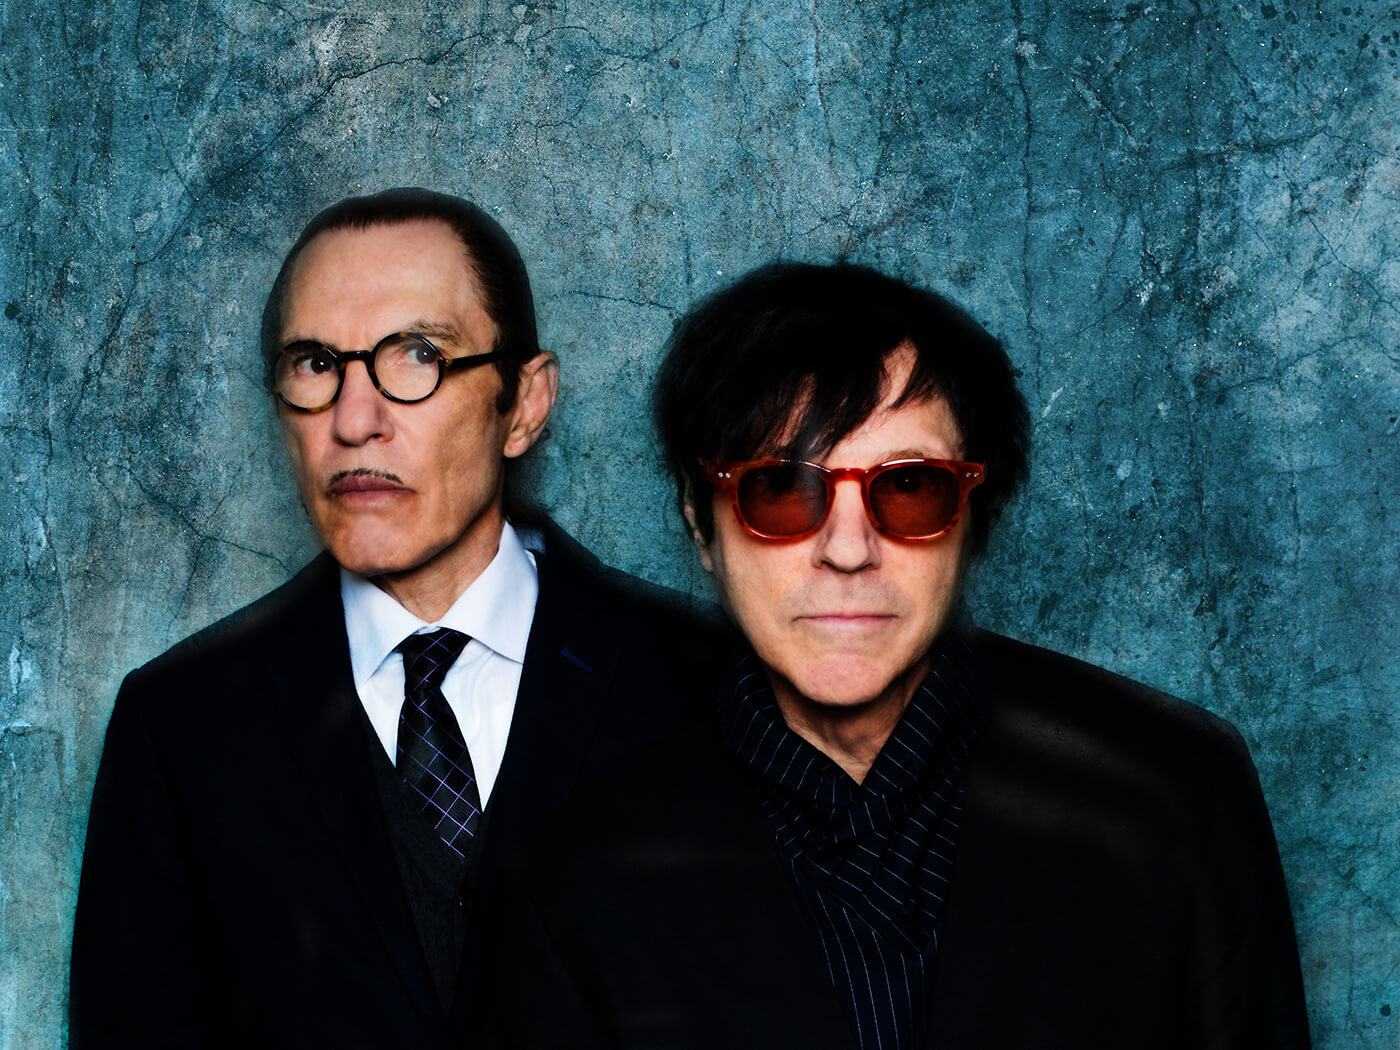 Hear Sparks' new seasonal protest song